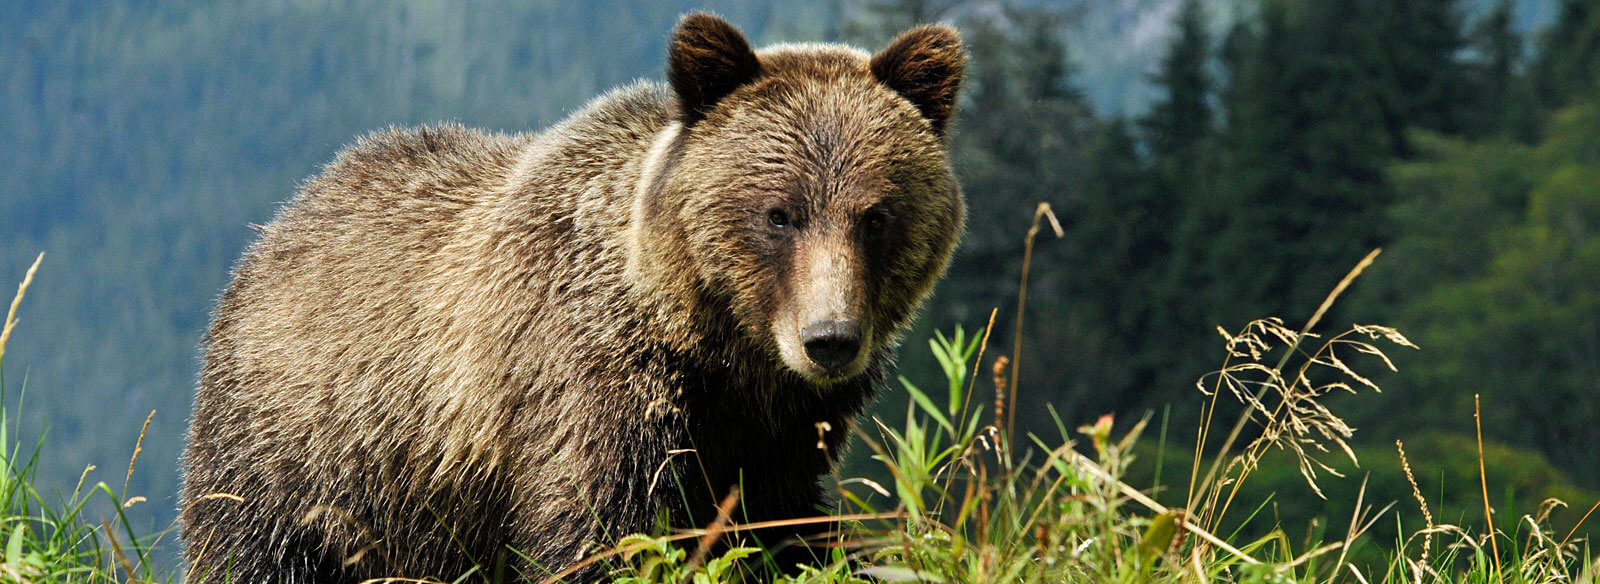 Brown Bear vs Grizzly Bear - Grizzly bear conservation